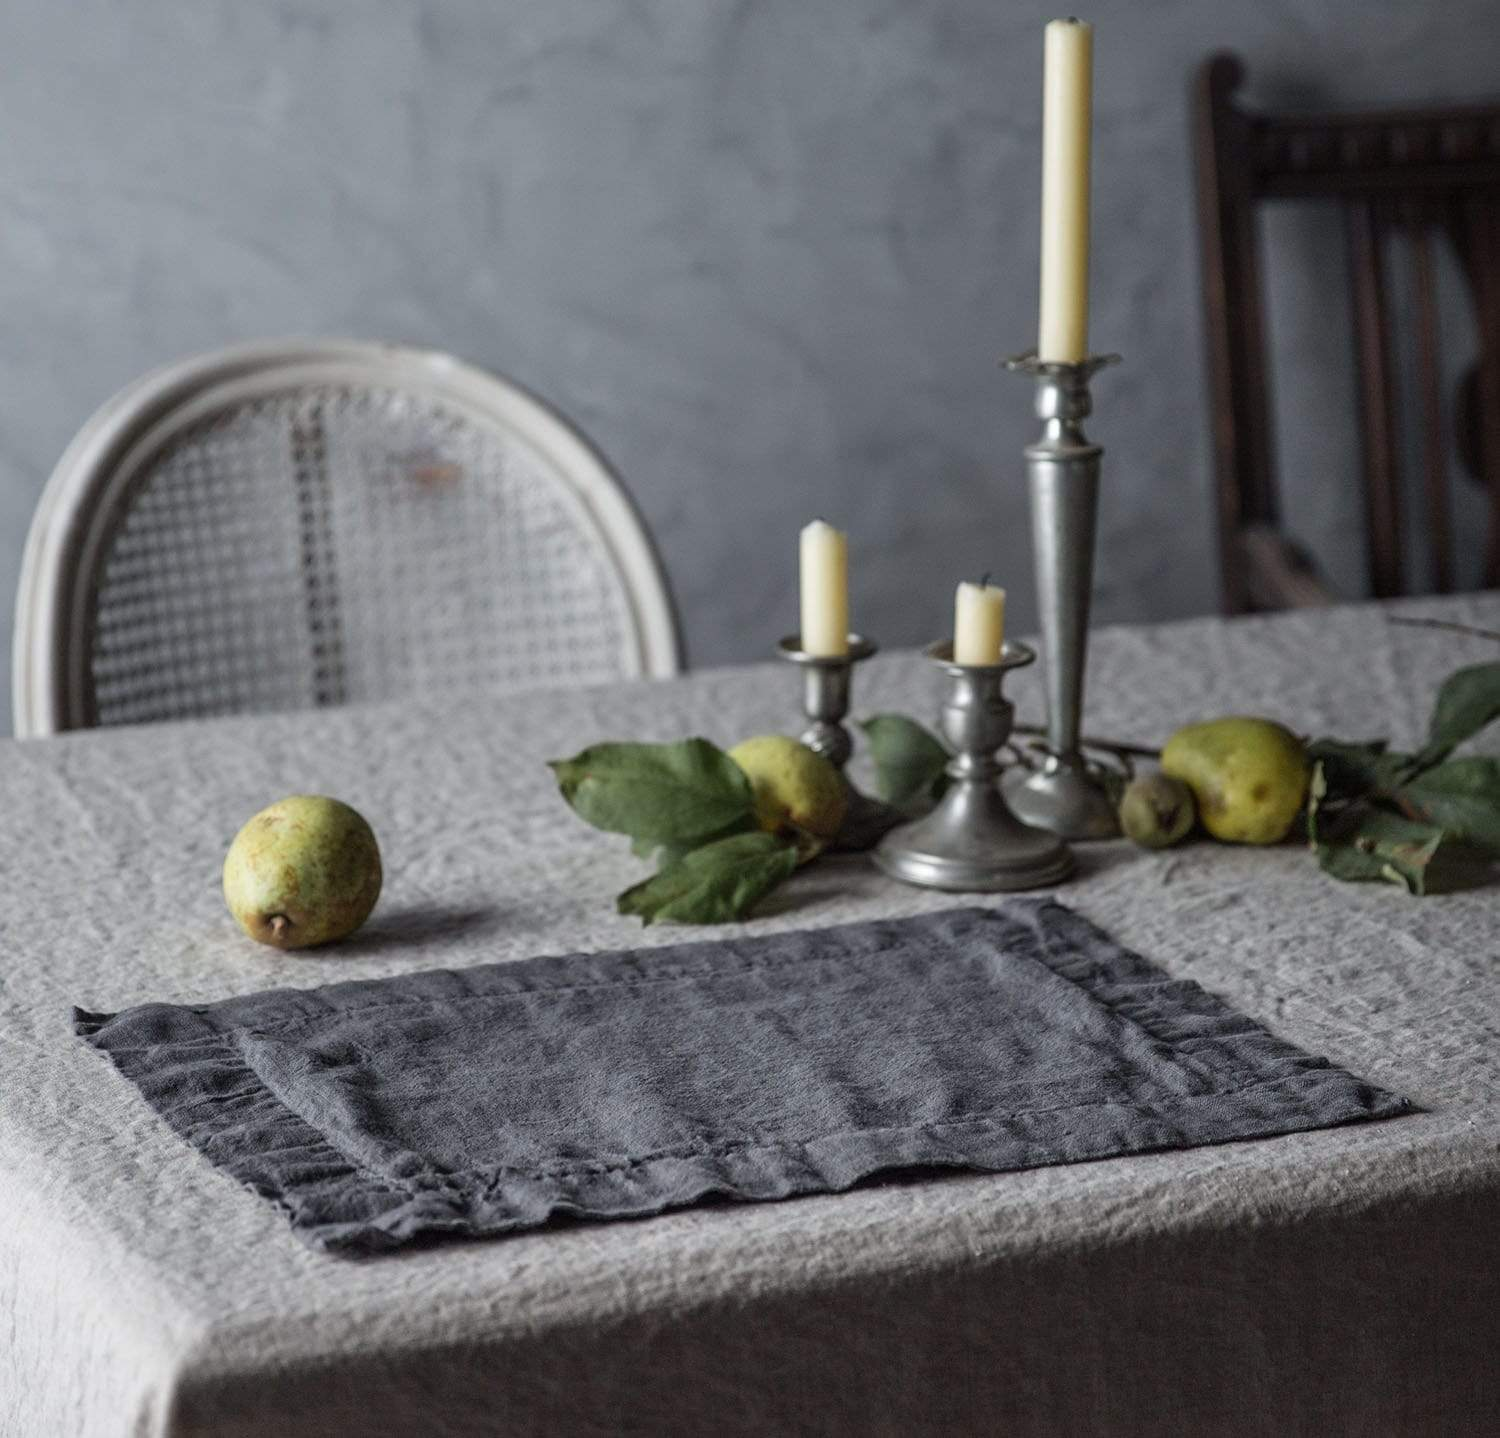 dining table scene with 100% linen placemat heavyweight Orkney linen fabric charcoal color